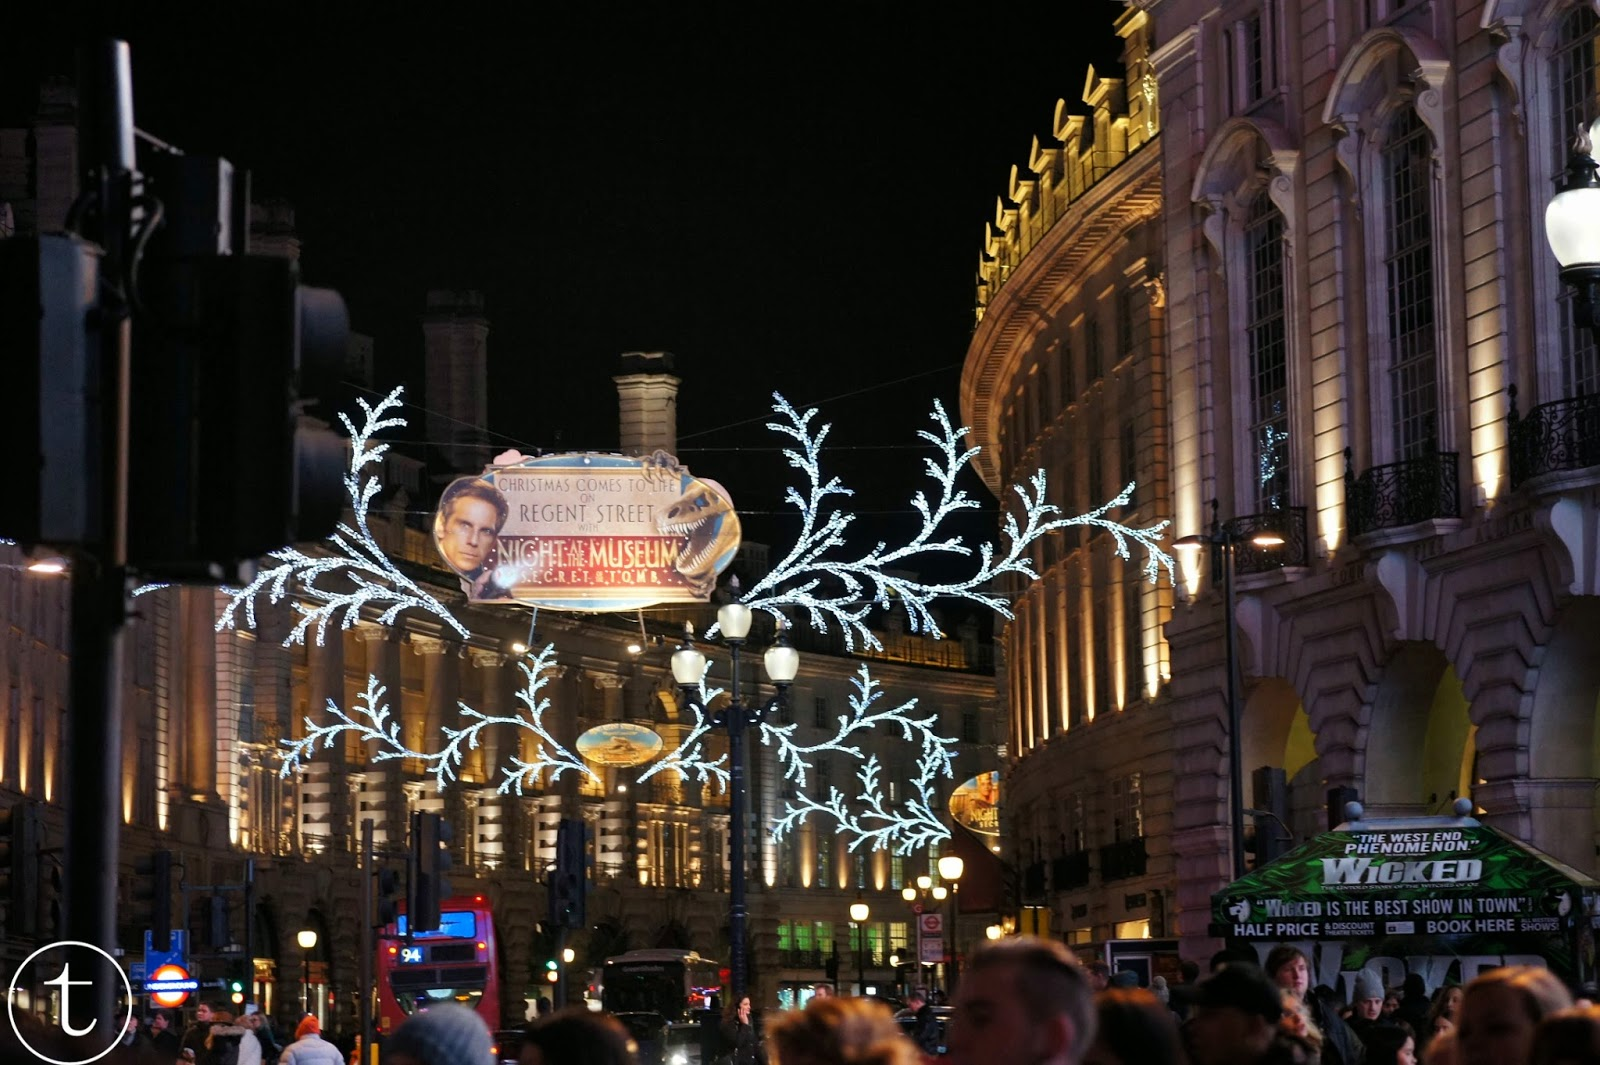 christmas time at regent street